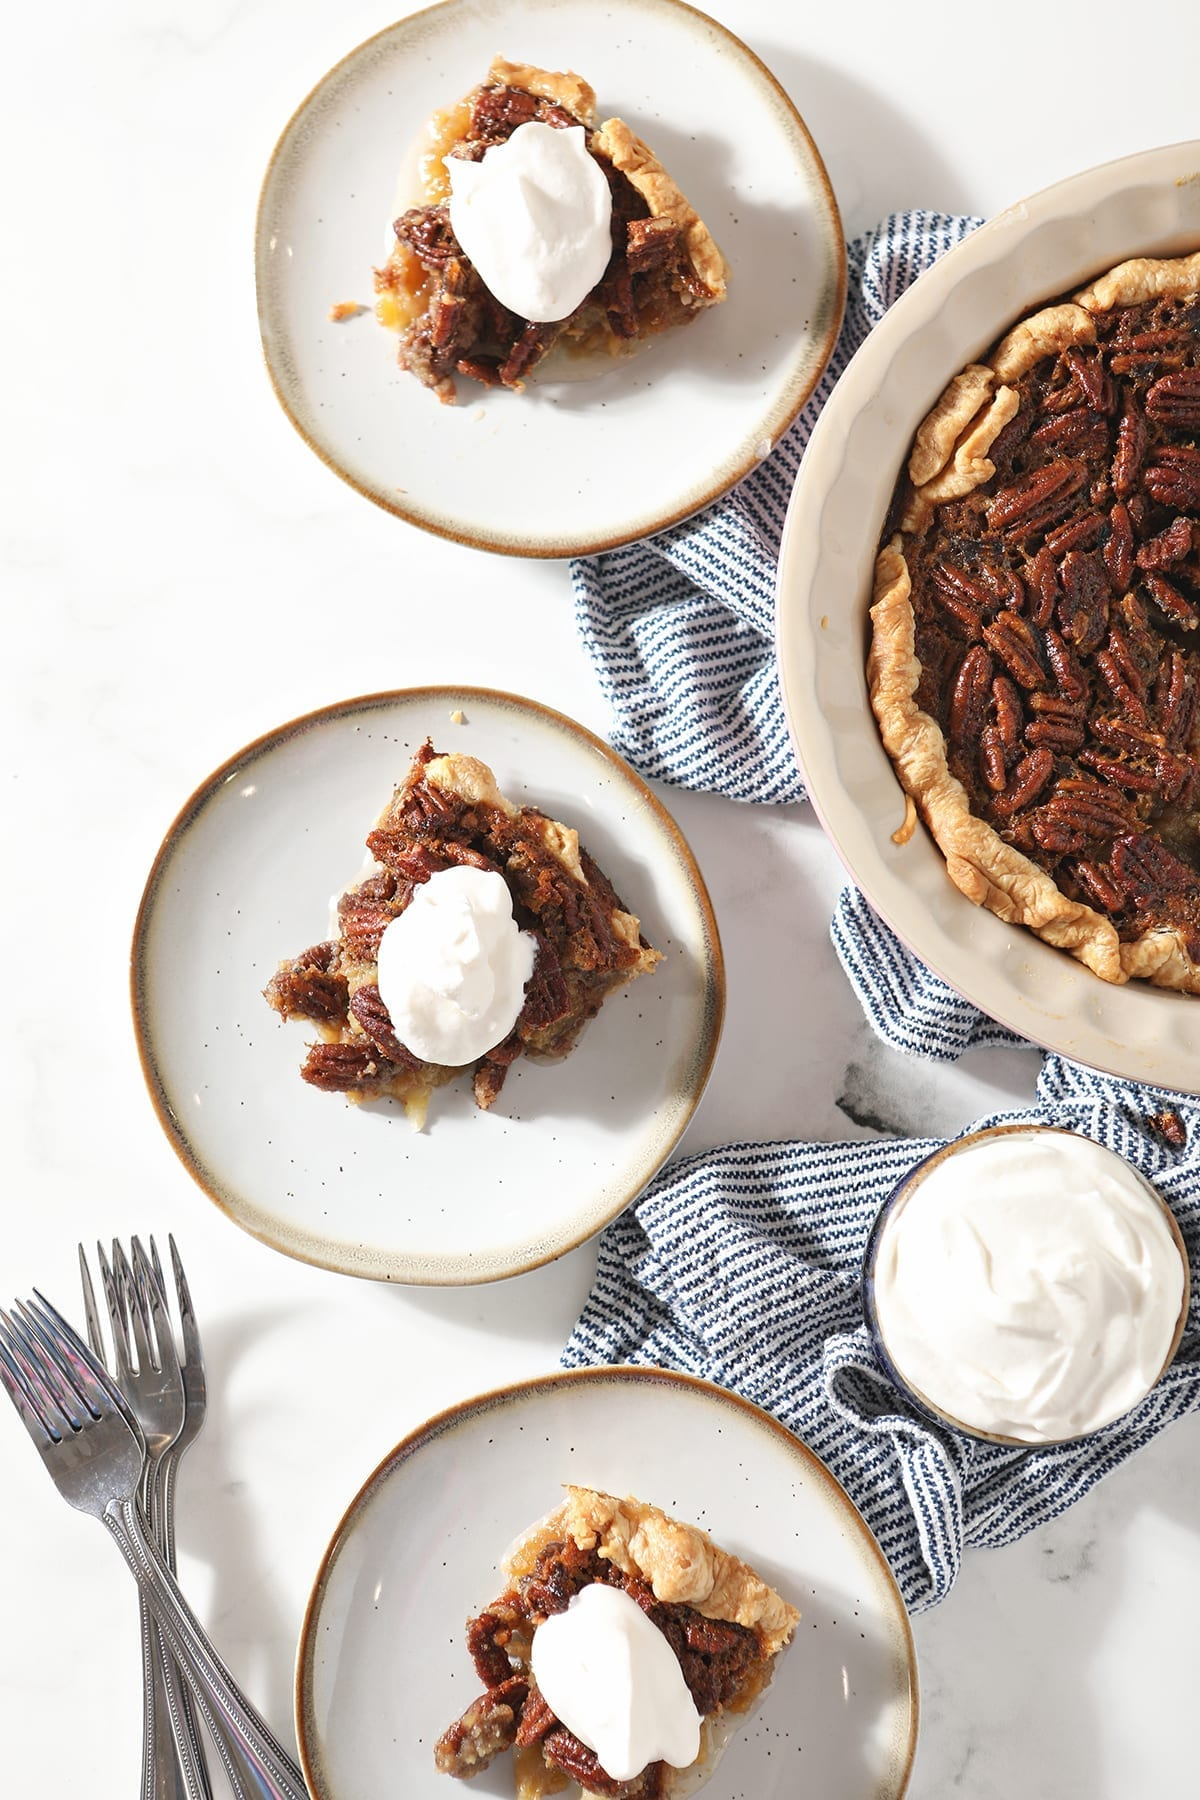 Overhead of three slices of Bourbon Pecan Pie on plates with forks next to the rest of the pie and a bowl of whipped cream